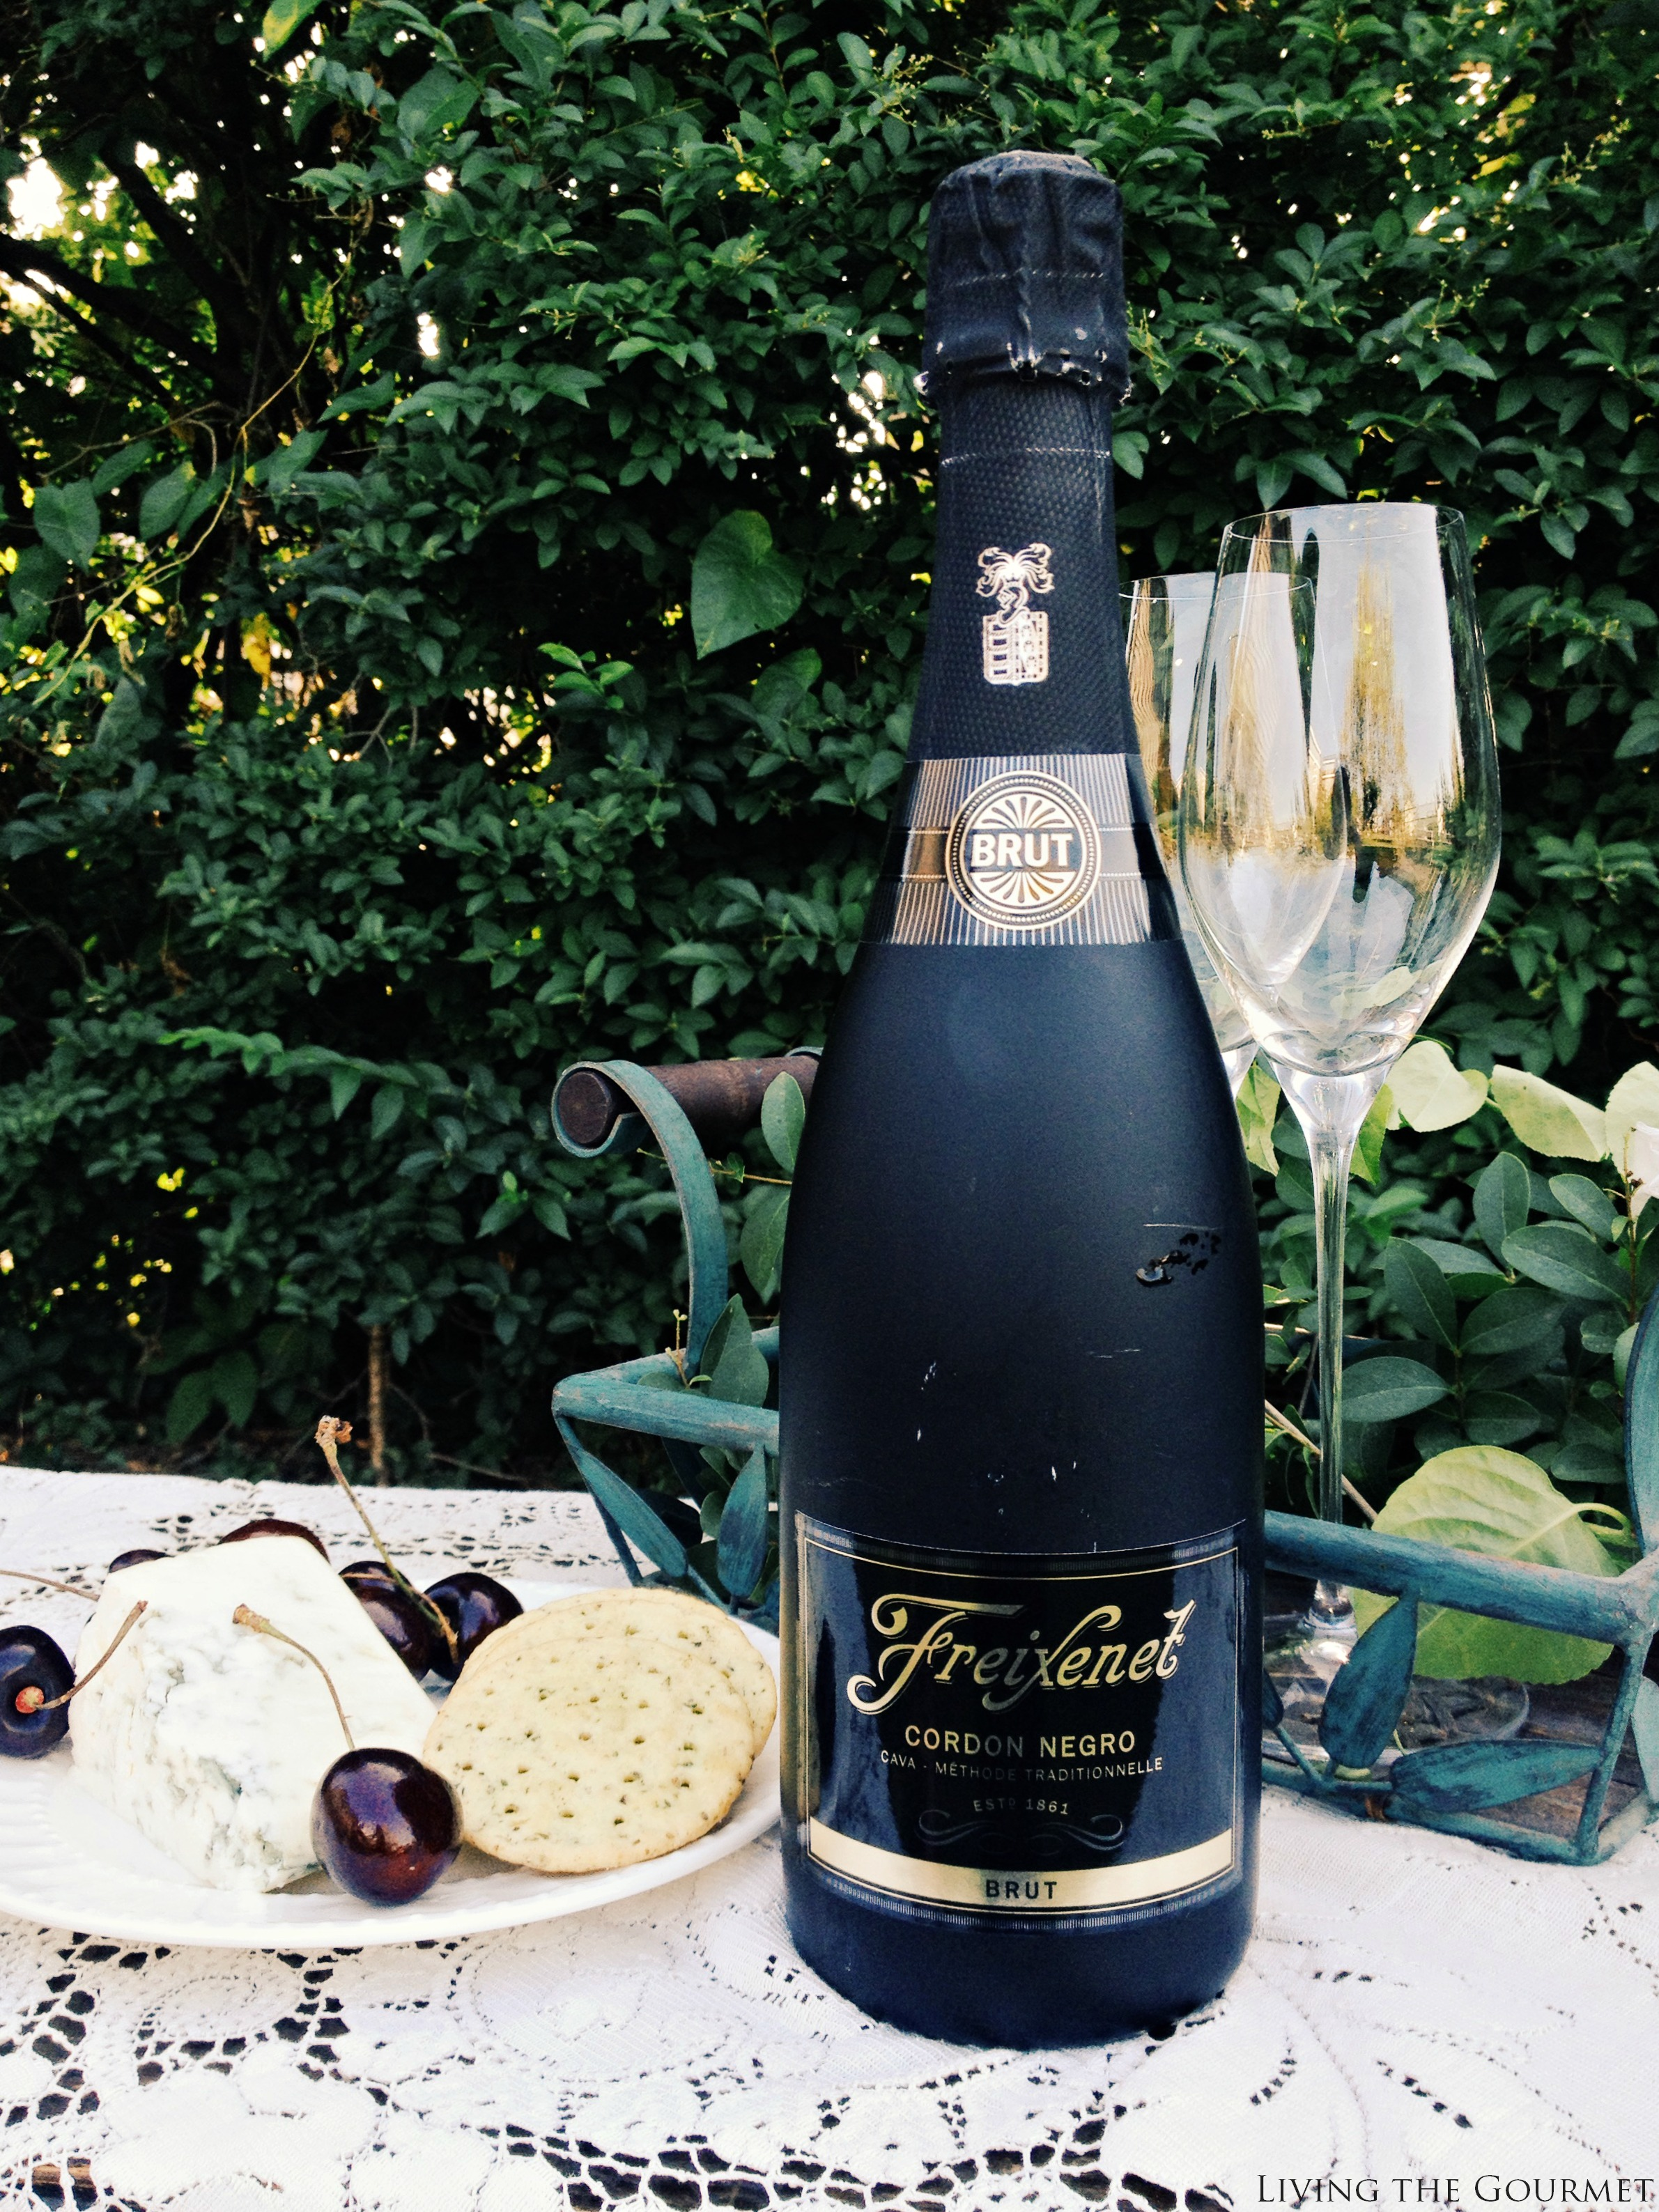 Living the Gourmet: Cordon Negro Brut